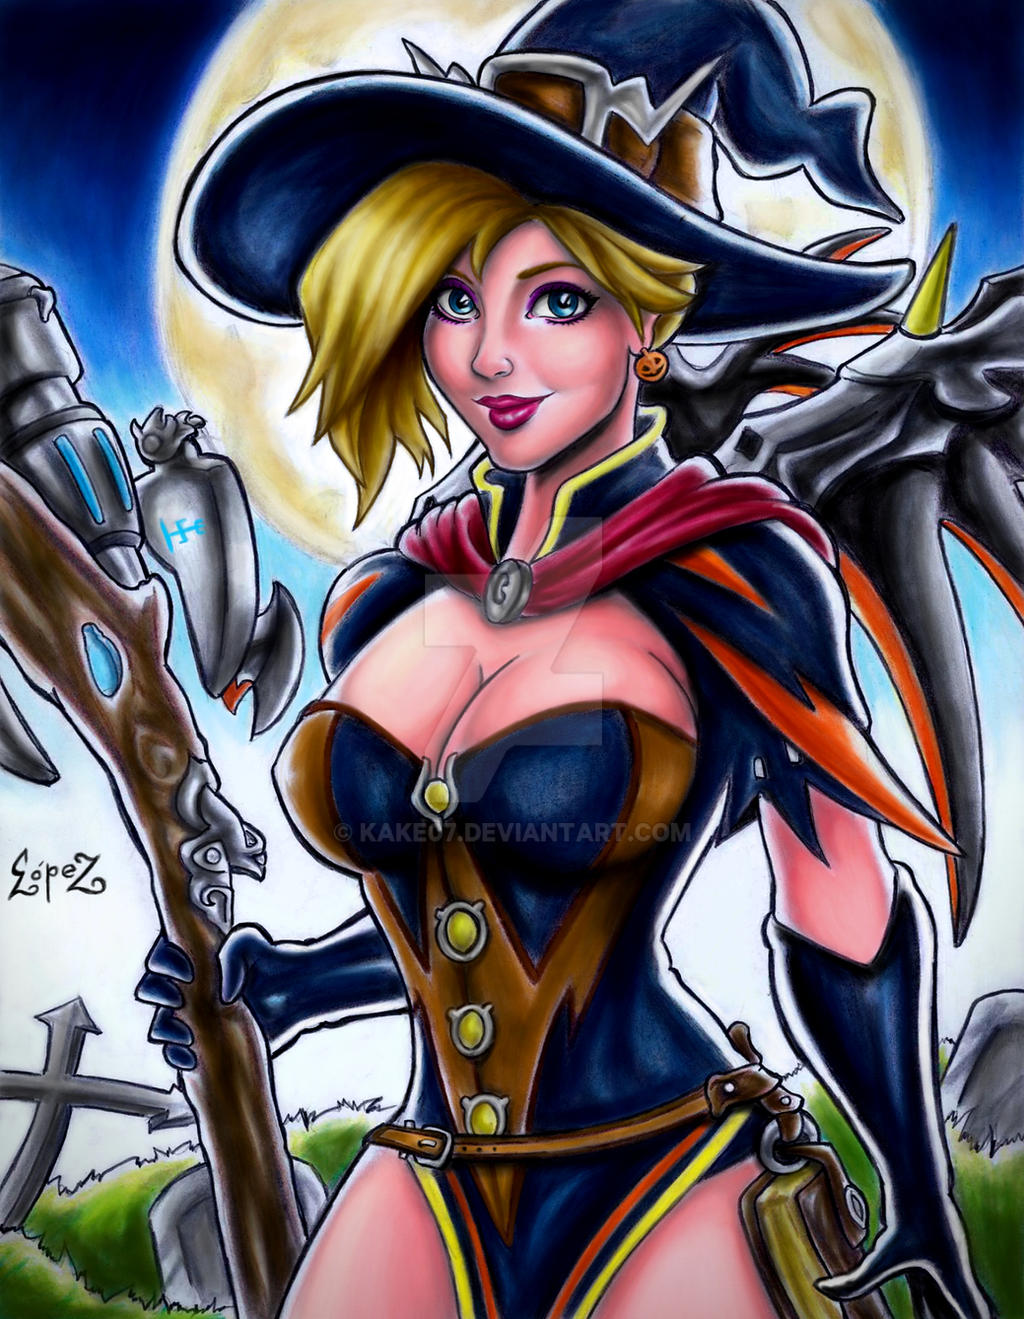 Overwatch Mercy (Halloween) by kake07 on DeviantArt